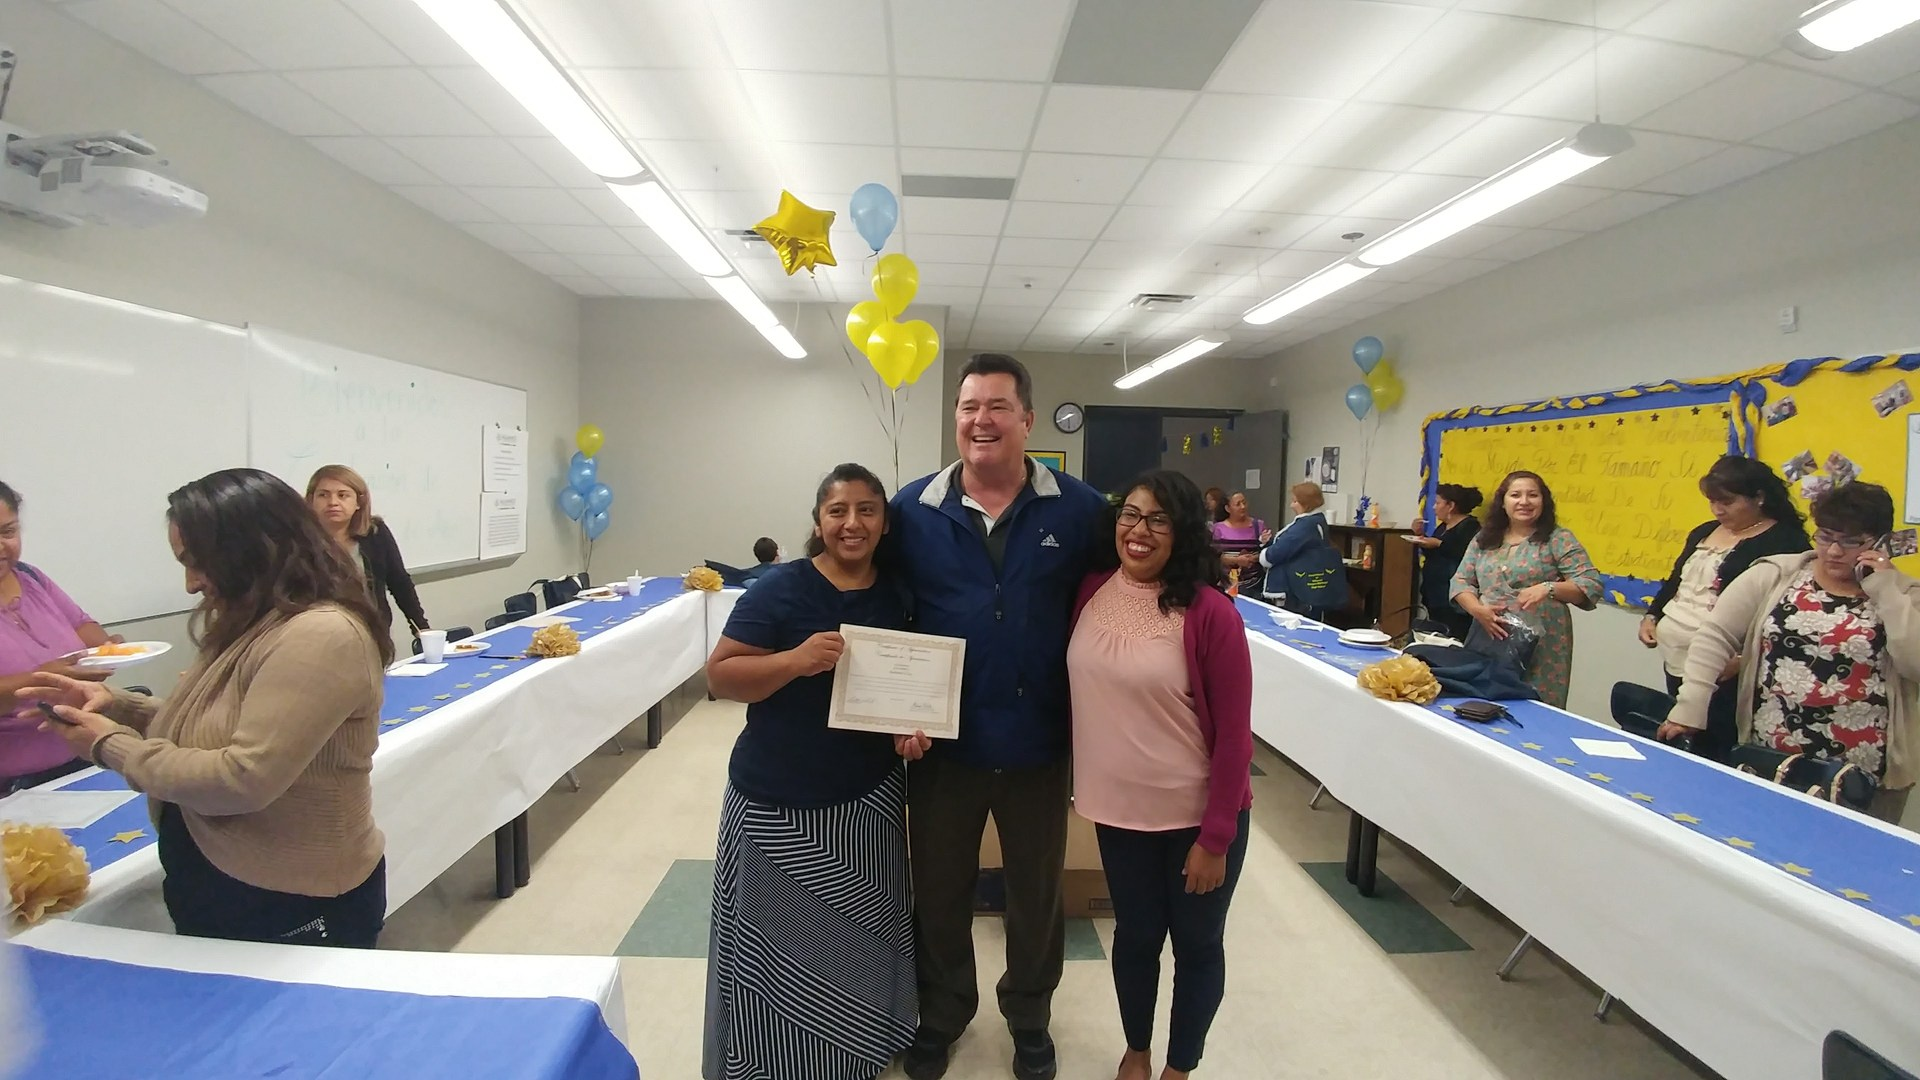 End of the year parent celebration